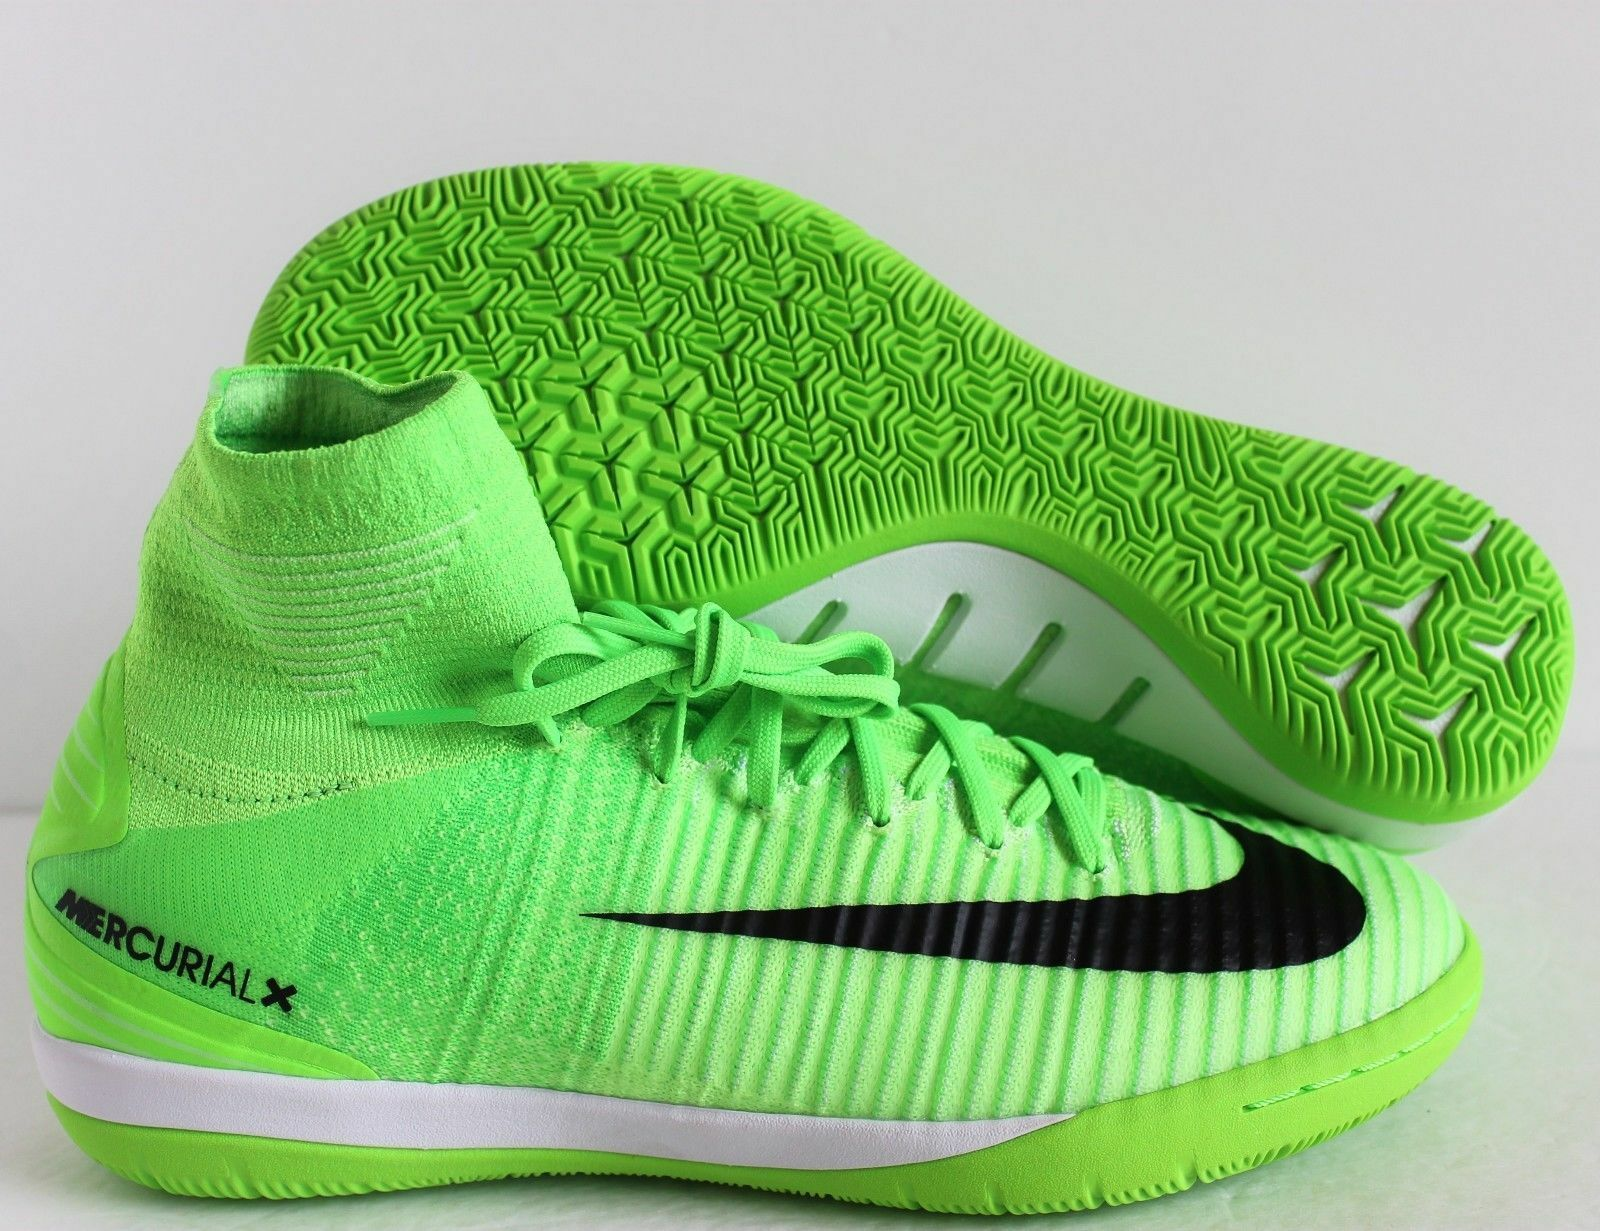 Nike MercurialX Proximo II 2 DF IC Indoor Soccer Shoes Electric Green